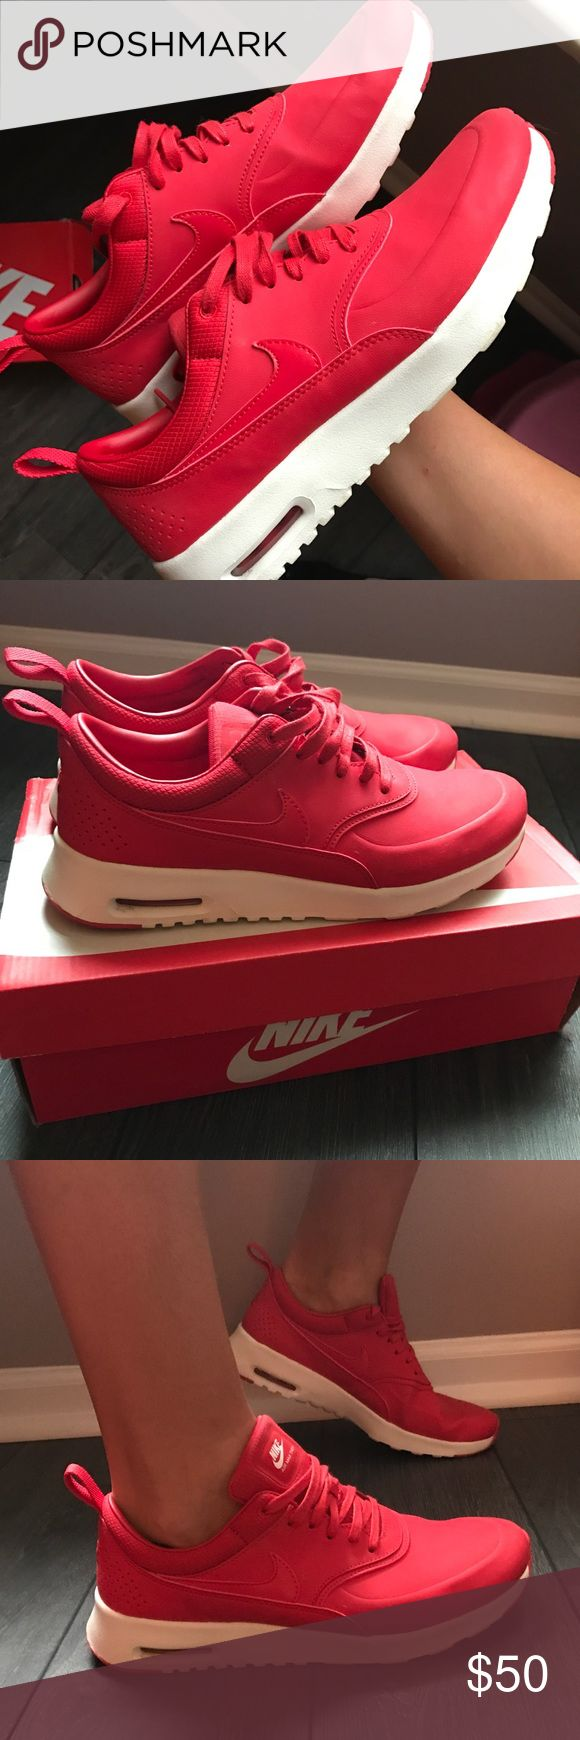 Women's Nike Airmax Thea Gym Red Size 8.5 Ladies, these shoes are sure to grab your attention! I purchased these shoes and unfortunately my foot has changed sizes and they are too big on me now. They are in great condition- worn about 3-5 times only. See photos to notice the clean bottoms and no scuffs on the body of the shoes. Purchased originally from footlocker for $99. Goes great with casual attire or wearing them to the gym. I own these shoes in several colors- they are extremely…